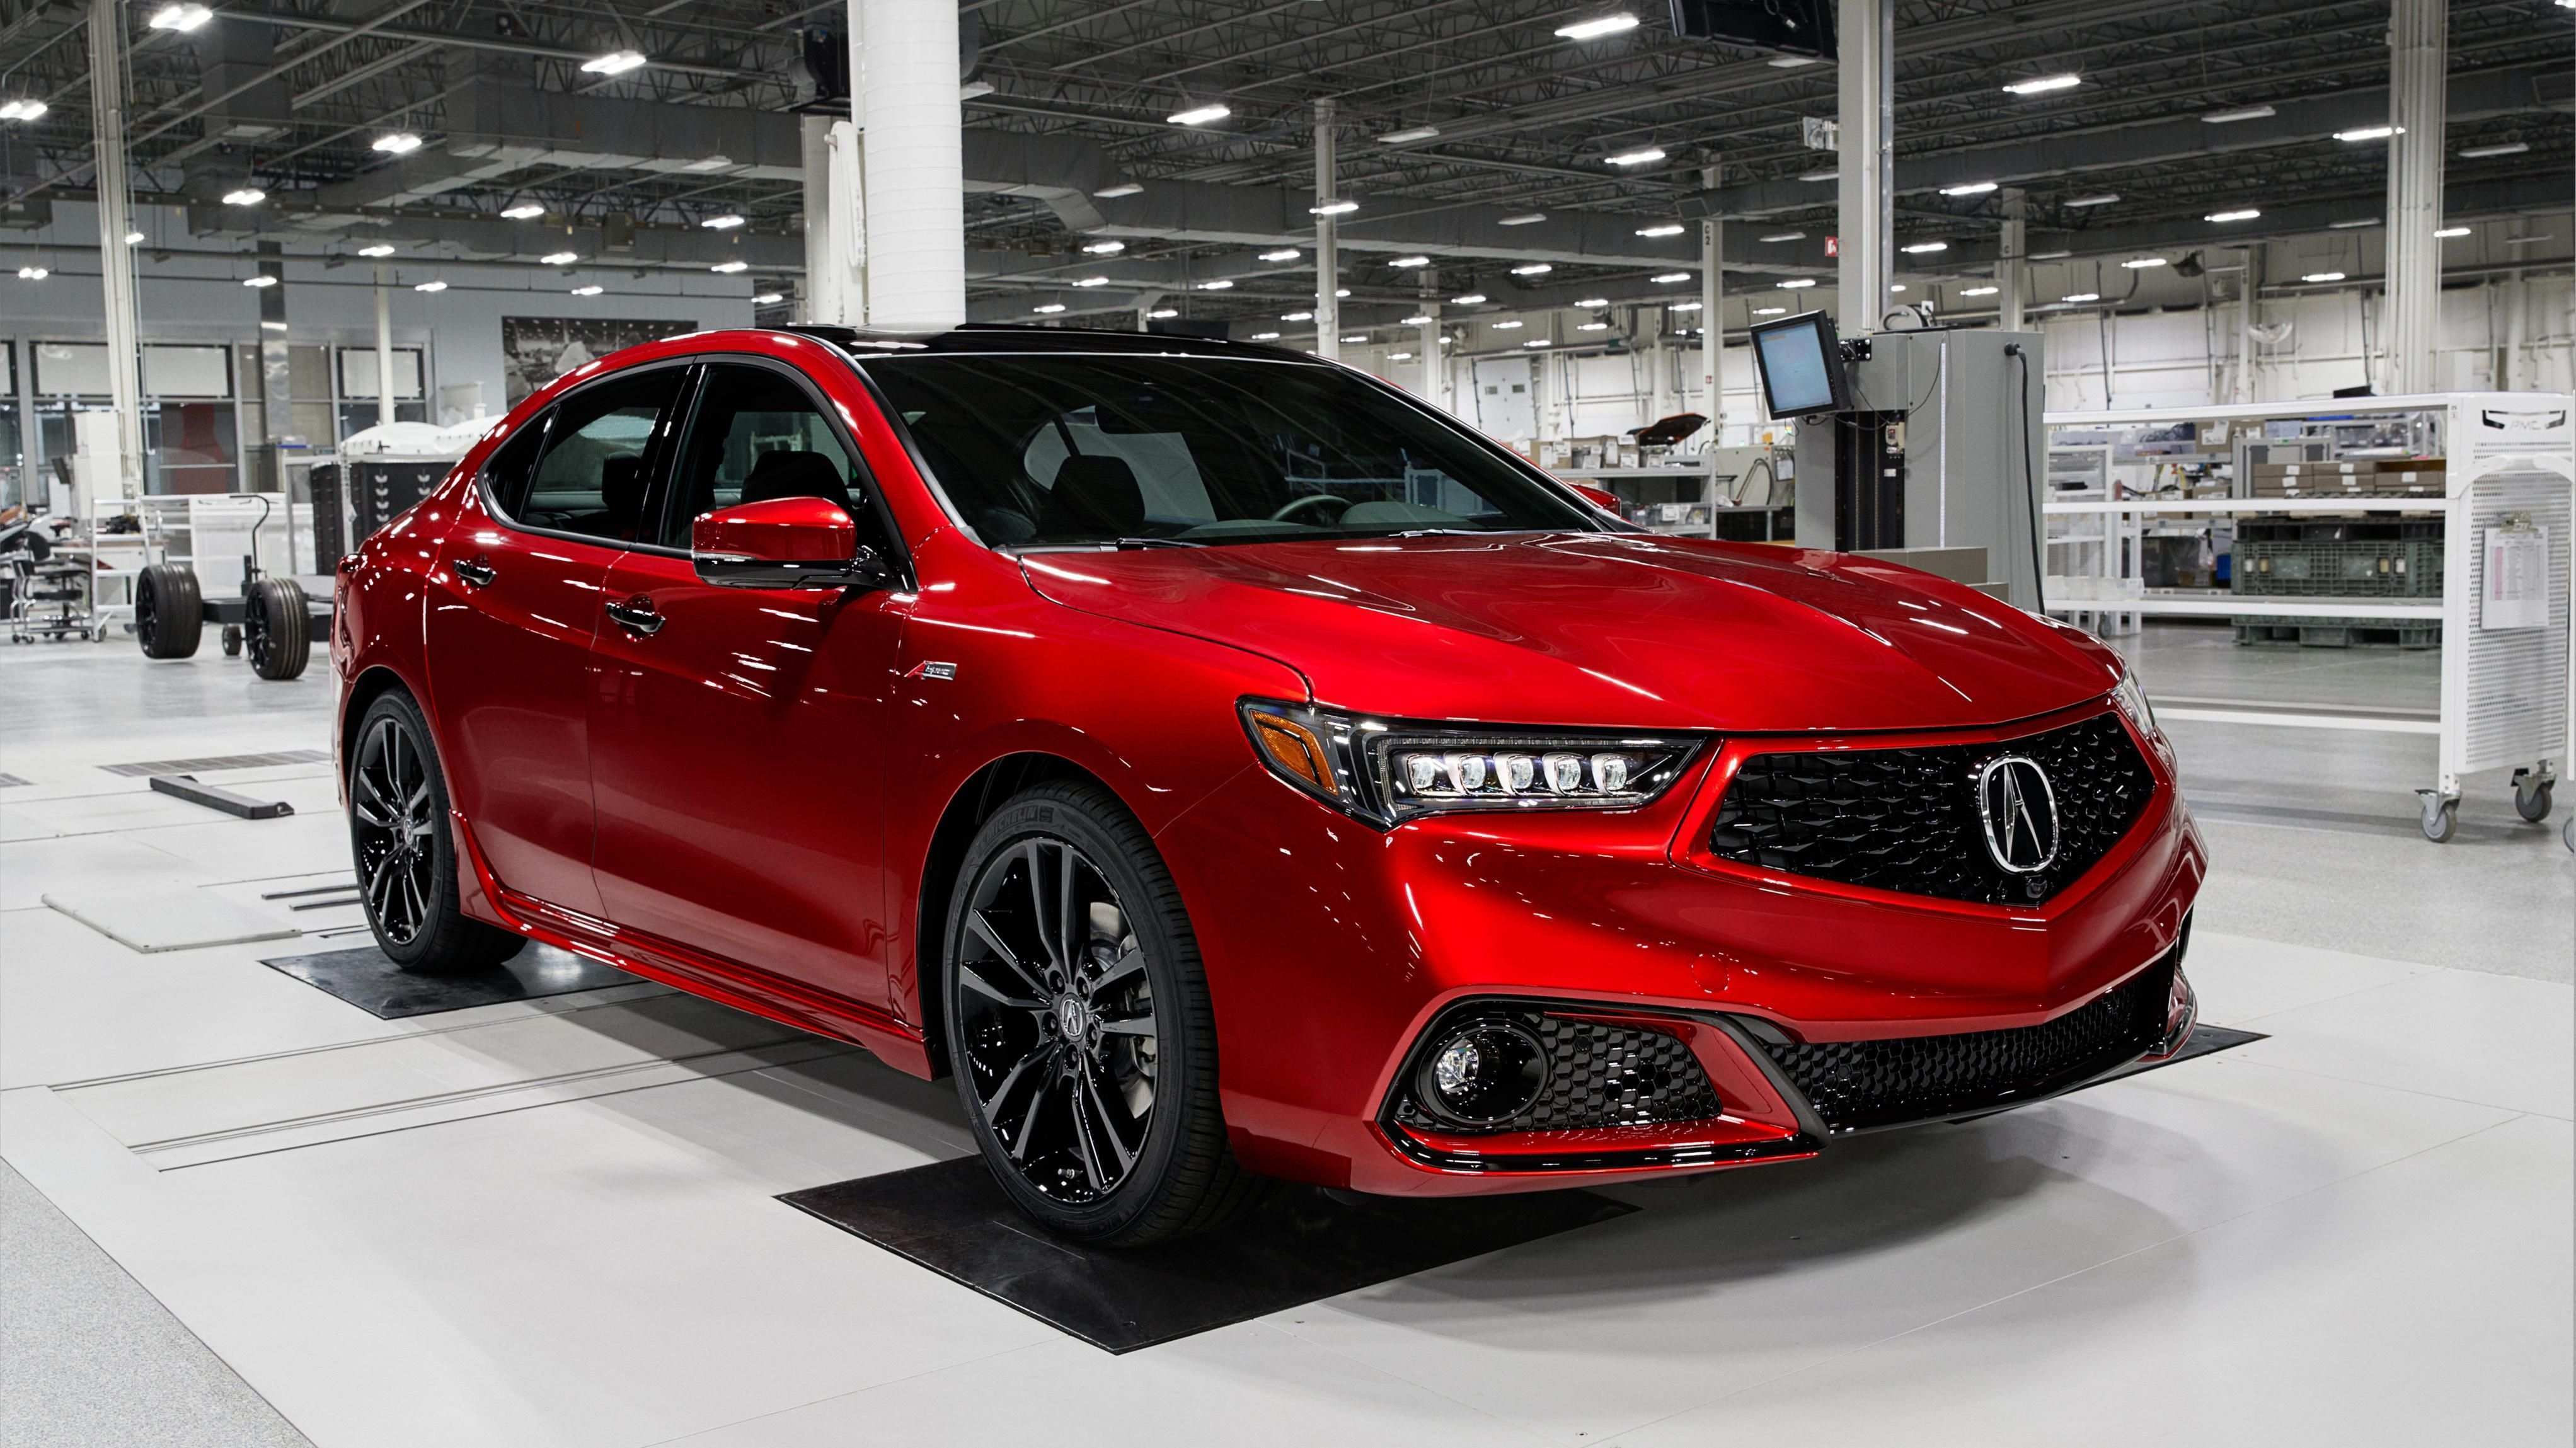 62 New Acura Car 2020 Price Design And Review